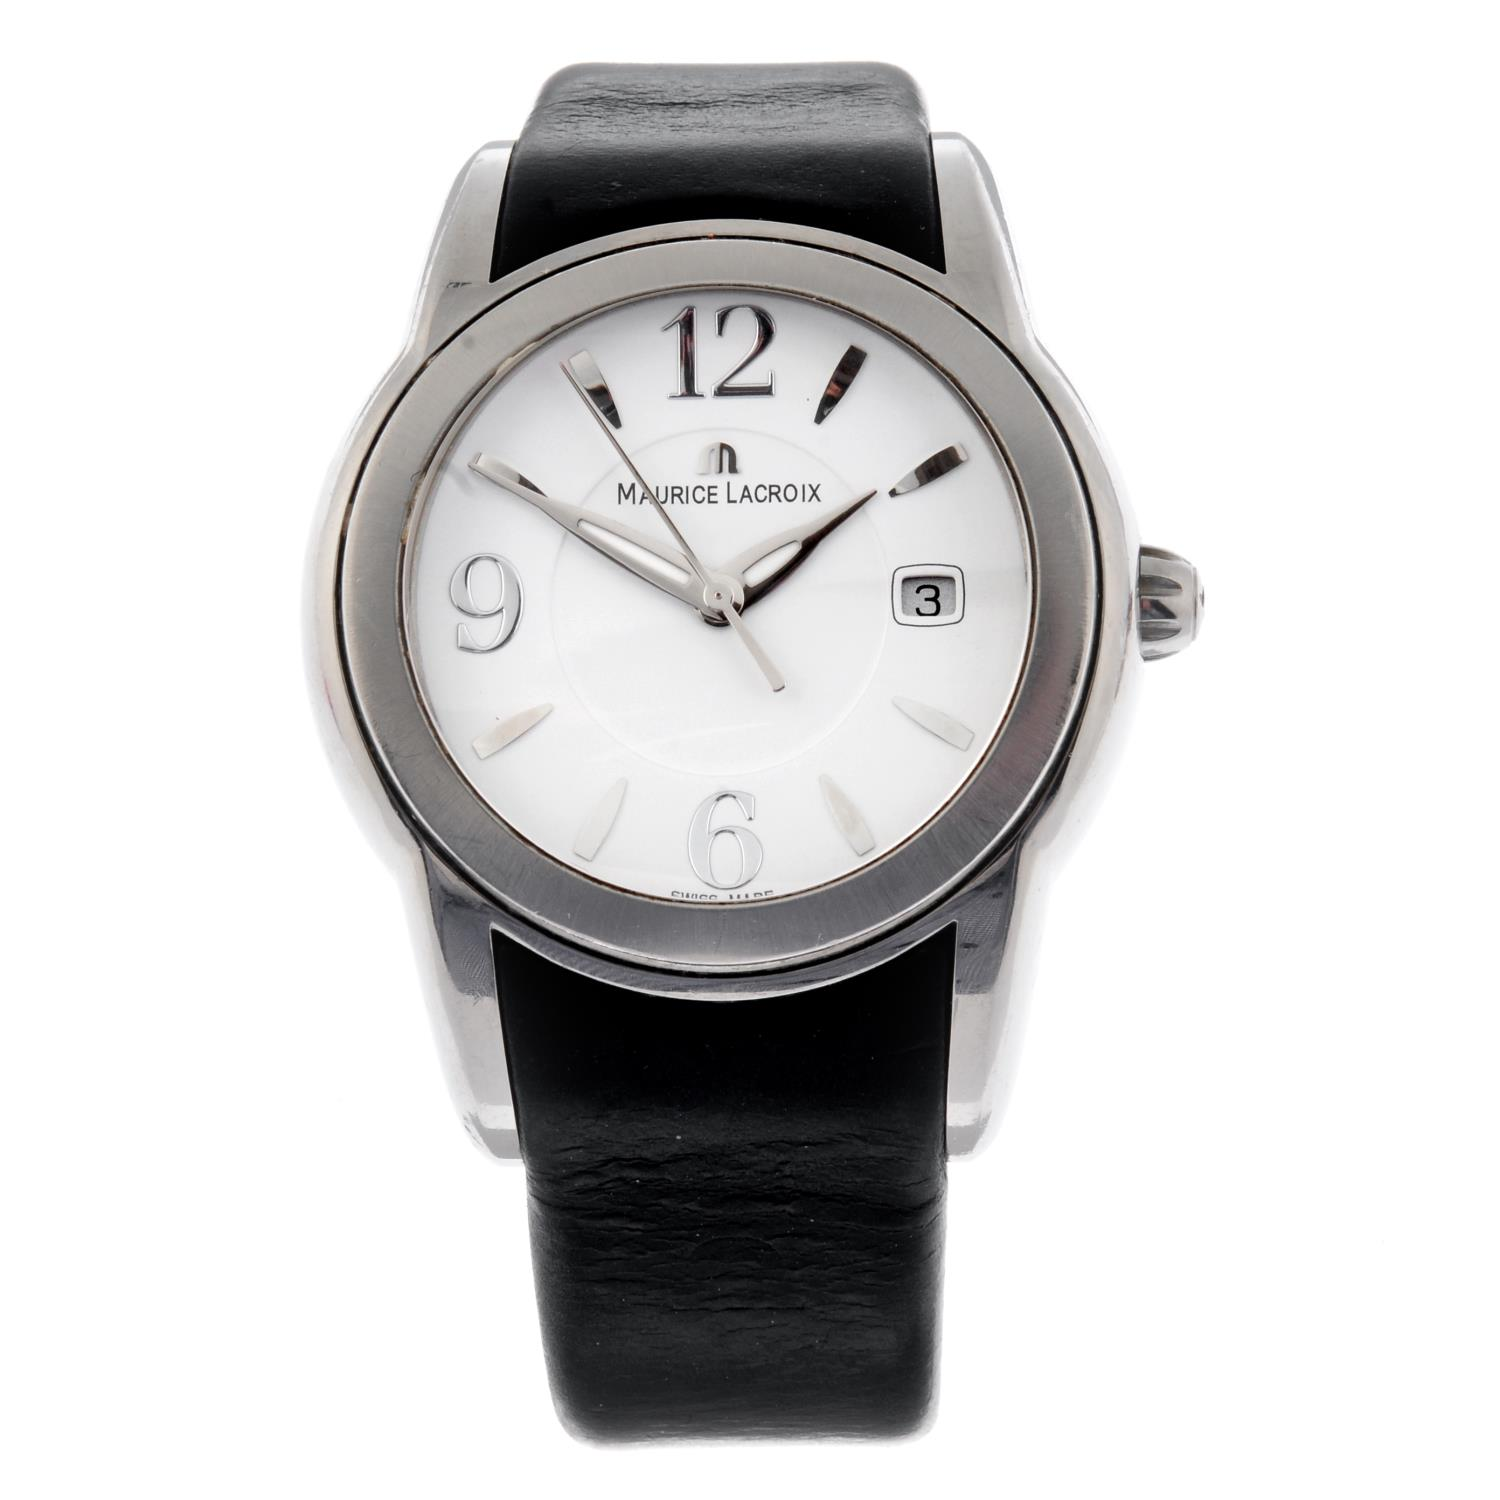 MAURICE LACROIX - a Sphere wrist watch.